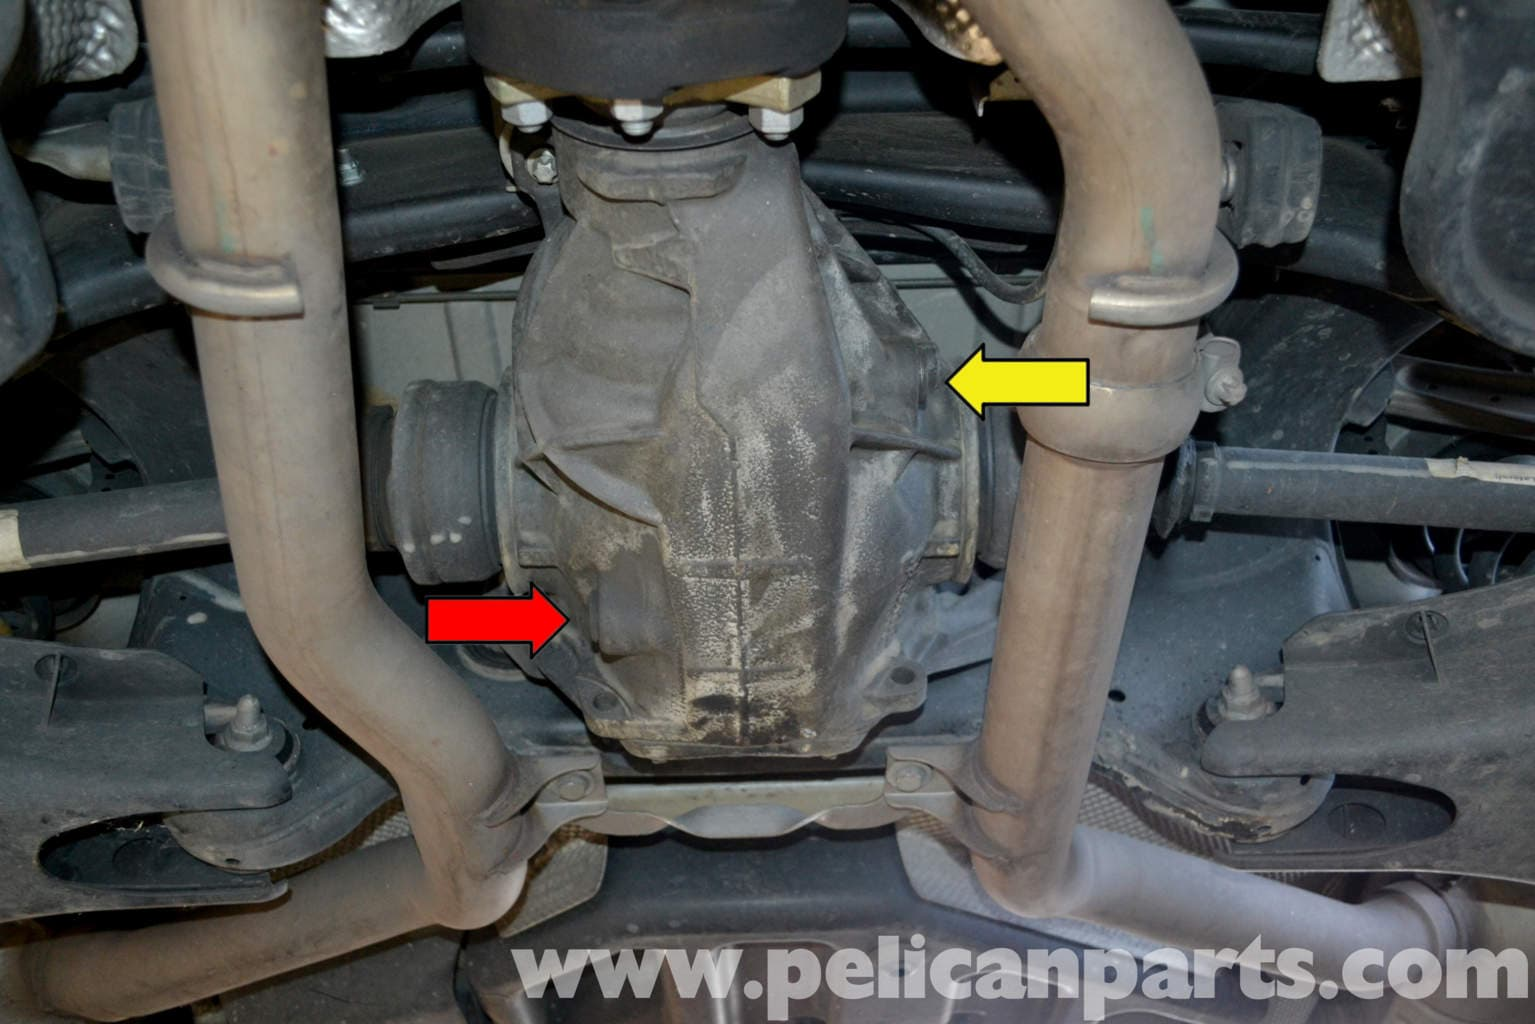 Mercedes Benz W204 Differential Fluid Replacement 2008